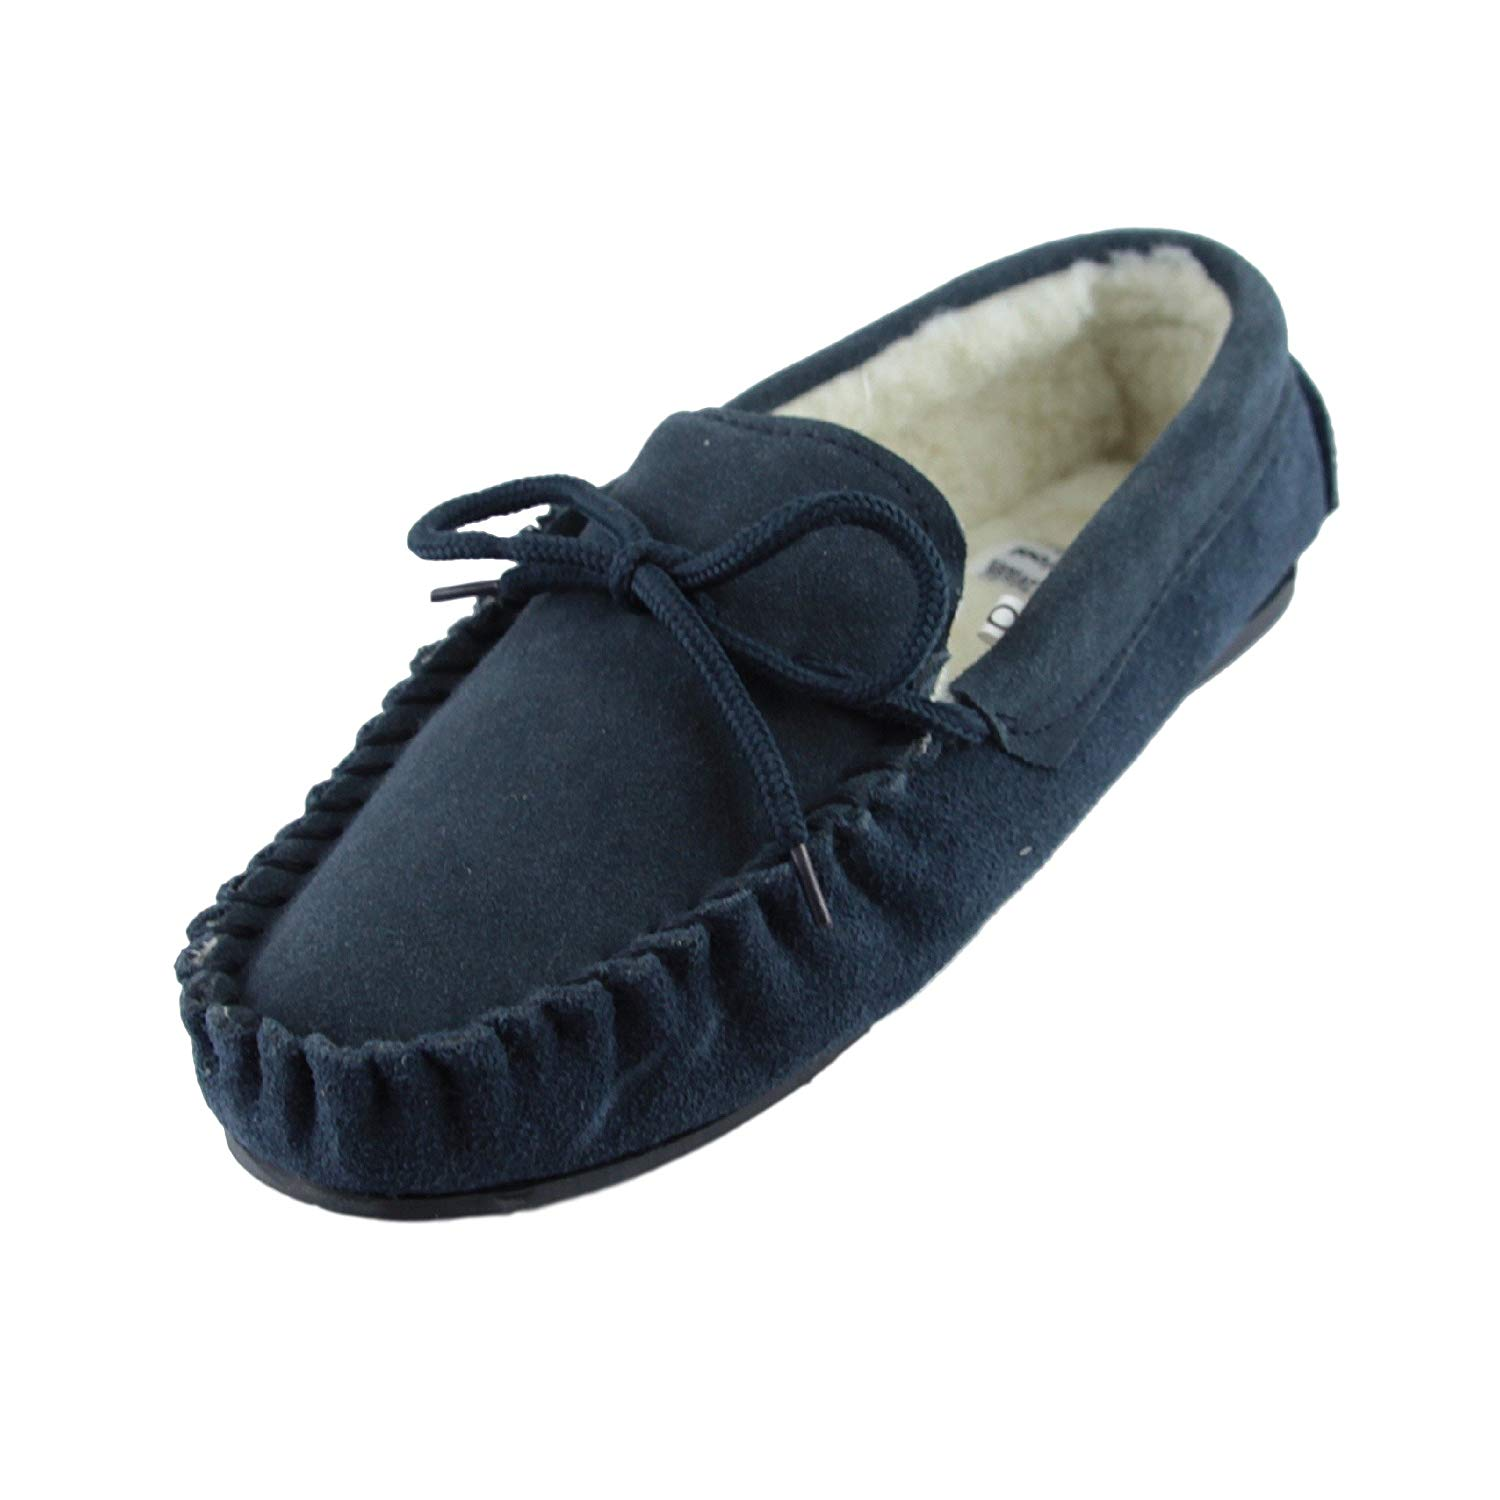 481d13fdb68 Get Quotations · Sheepskin World Deluxe Mens Lambswool Moccasin Slippers  with Hard Sole - Suede Upper